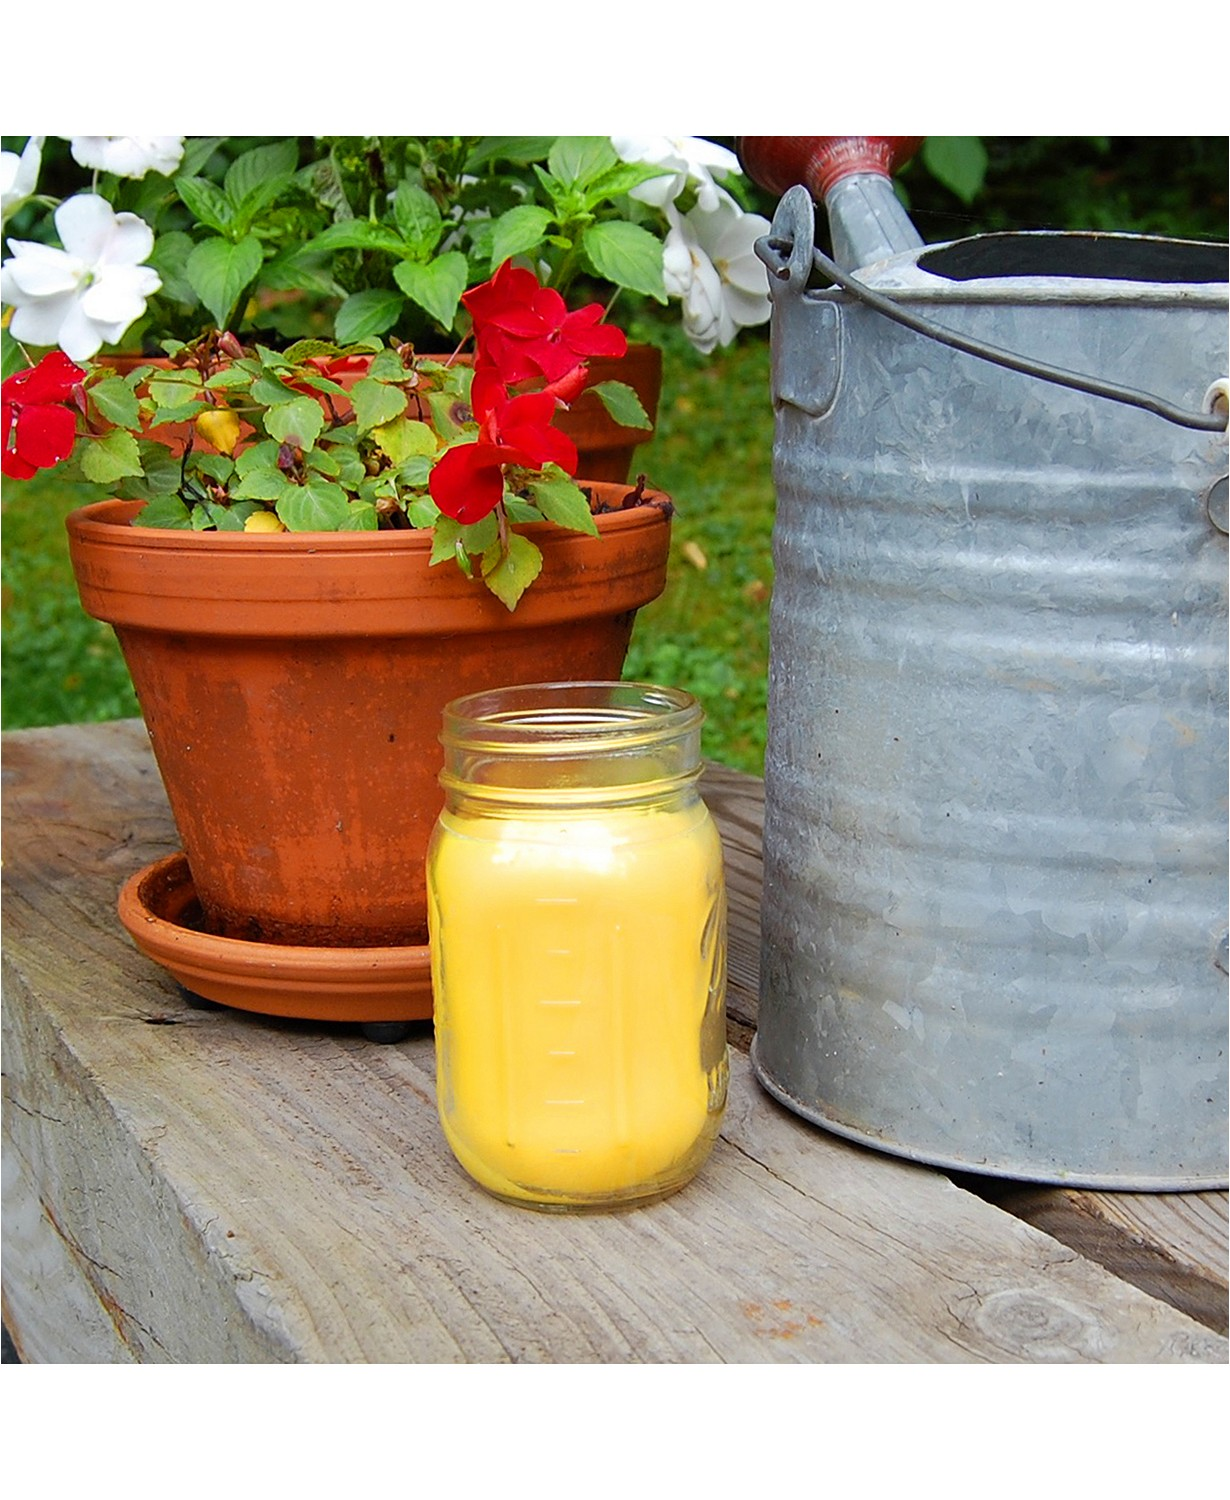 These 3 trendy glass 12oz. Mason jars are filled with the finest paraffin and citronella scented oil. These beautiful yellow candles will add a splash of color to an outdoor picnic, party or special occasion while keeping pesky bugs away from your guests.